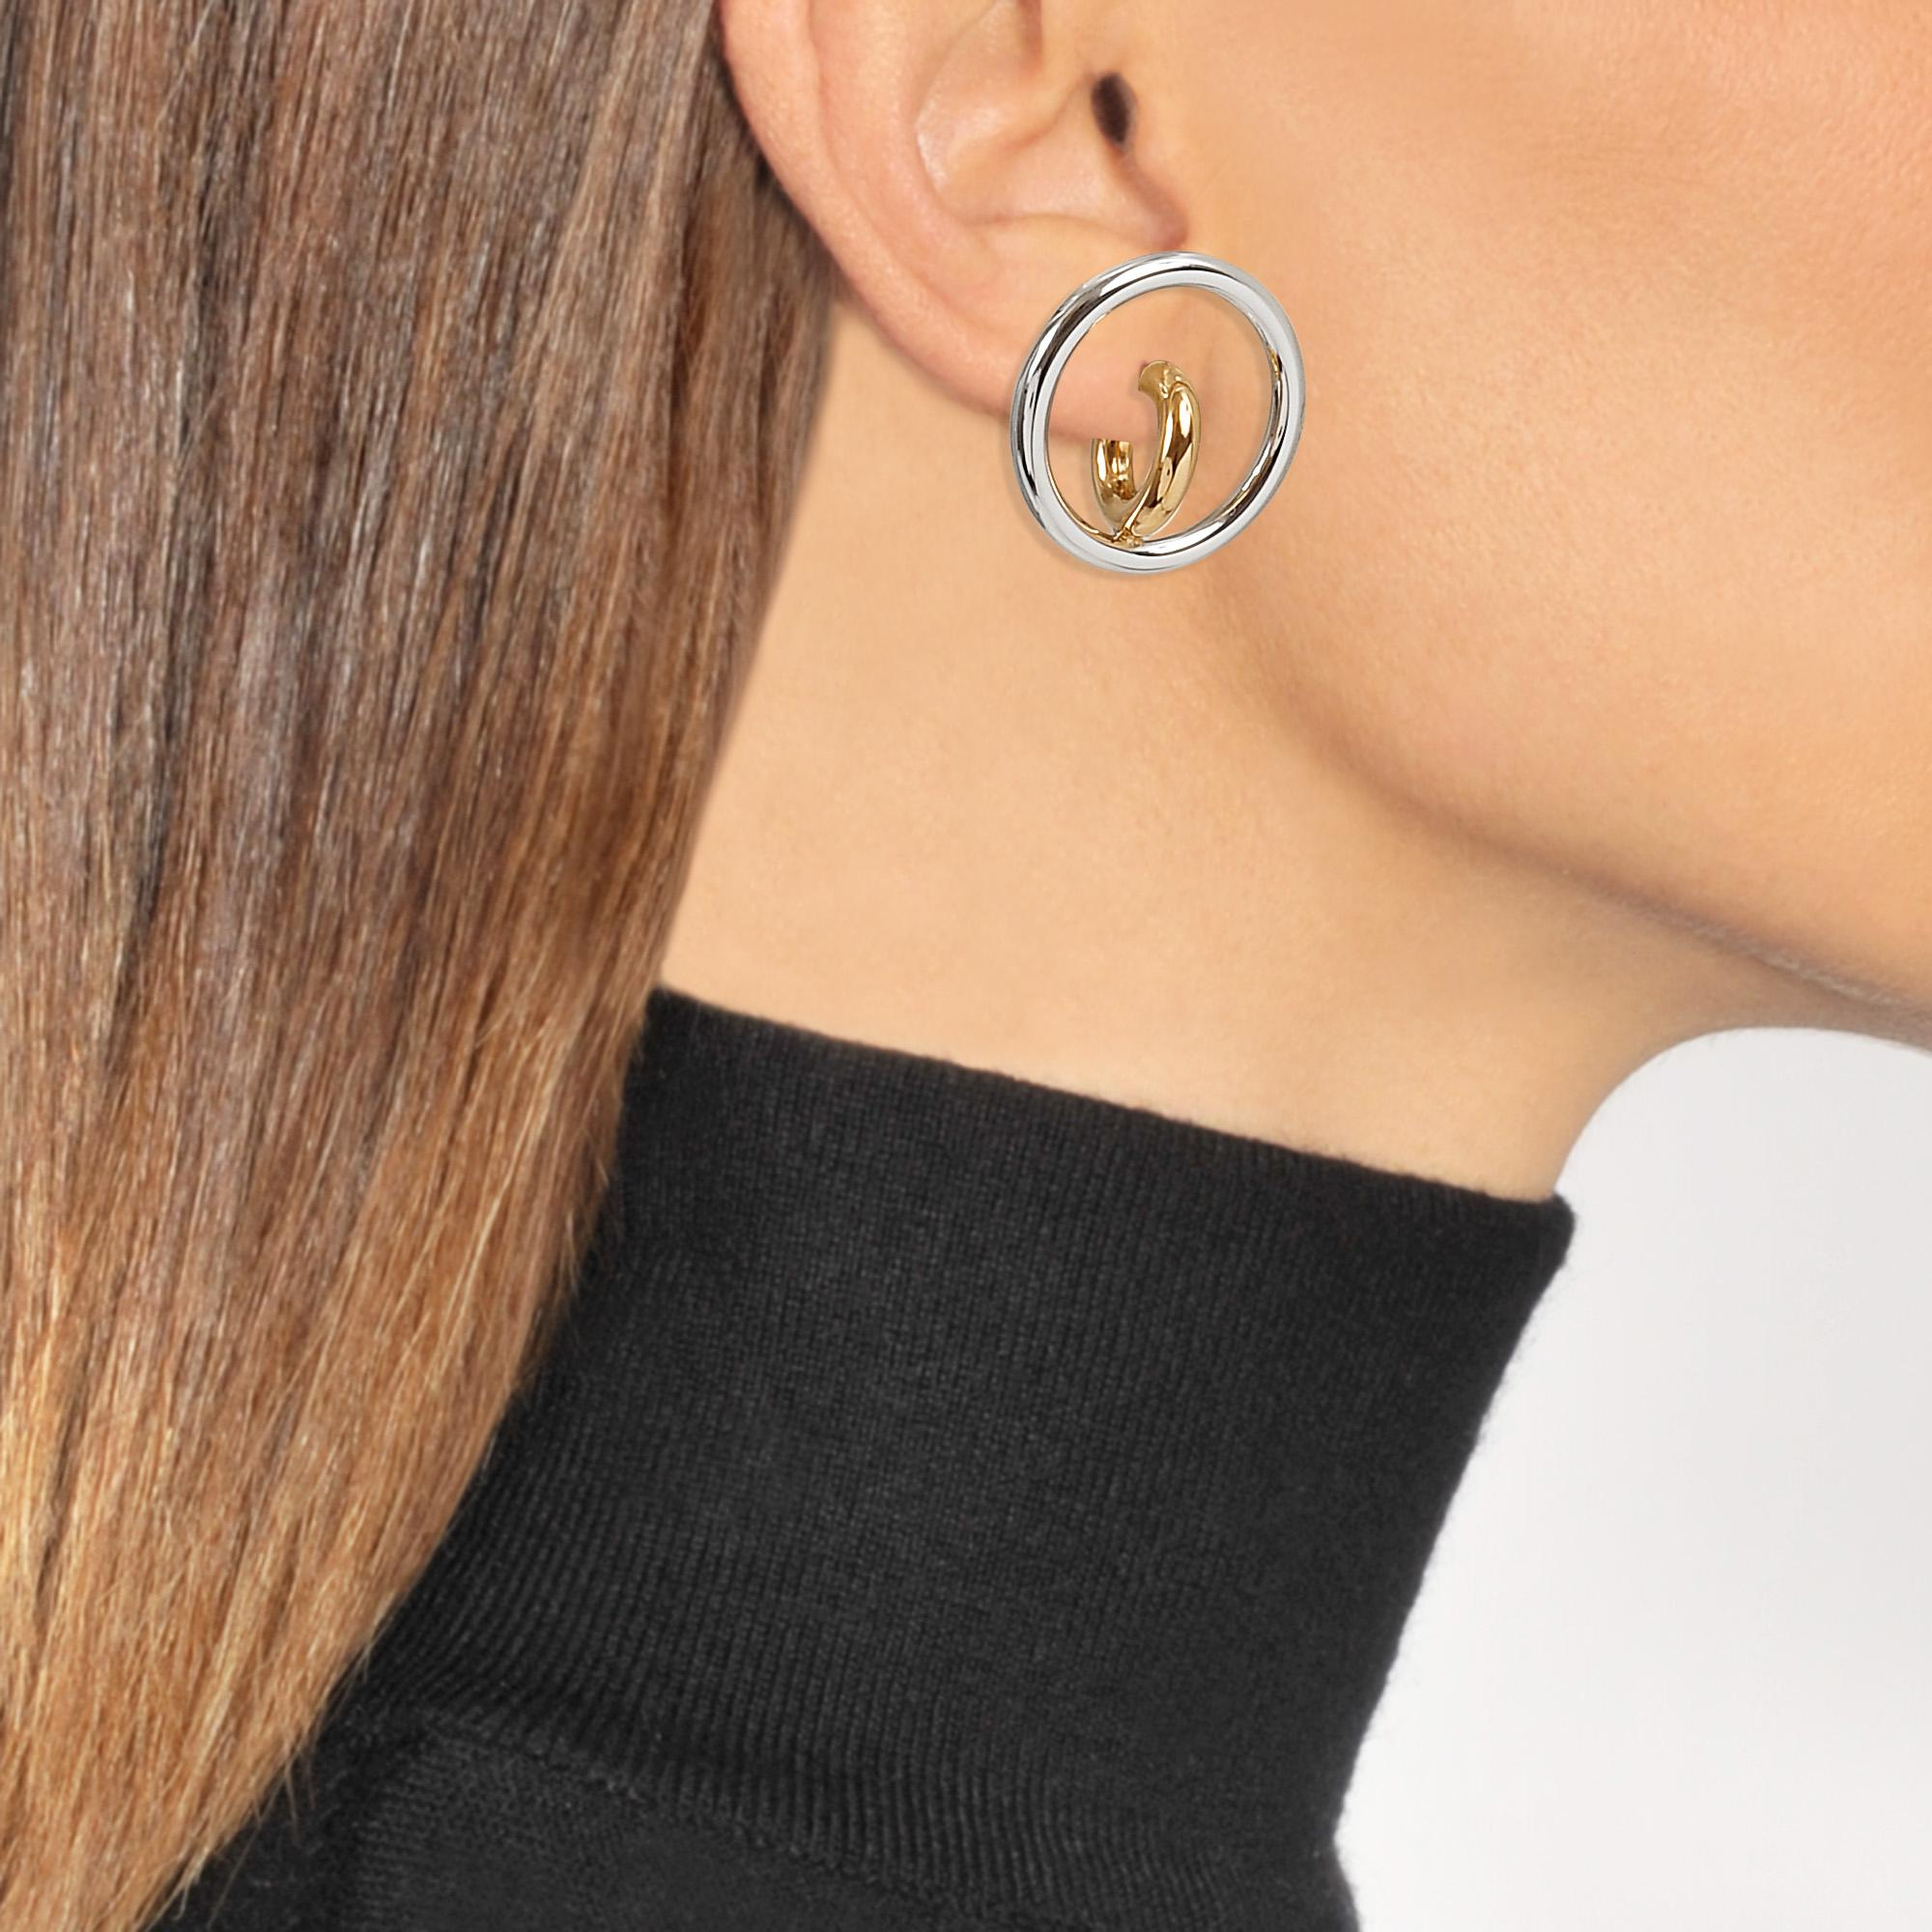 Charlotte Chesnais Saturn Blow M Mono Earring in Yellow Vermeil and Silver KrWfBr1